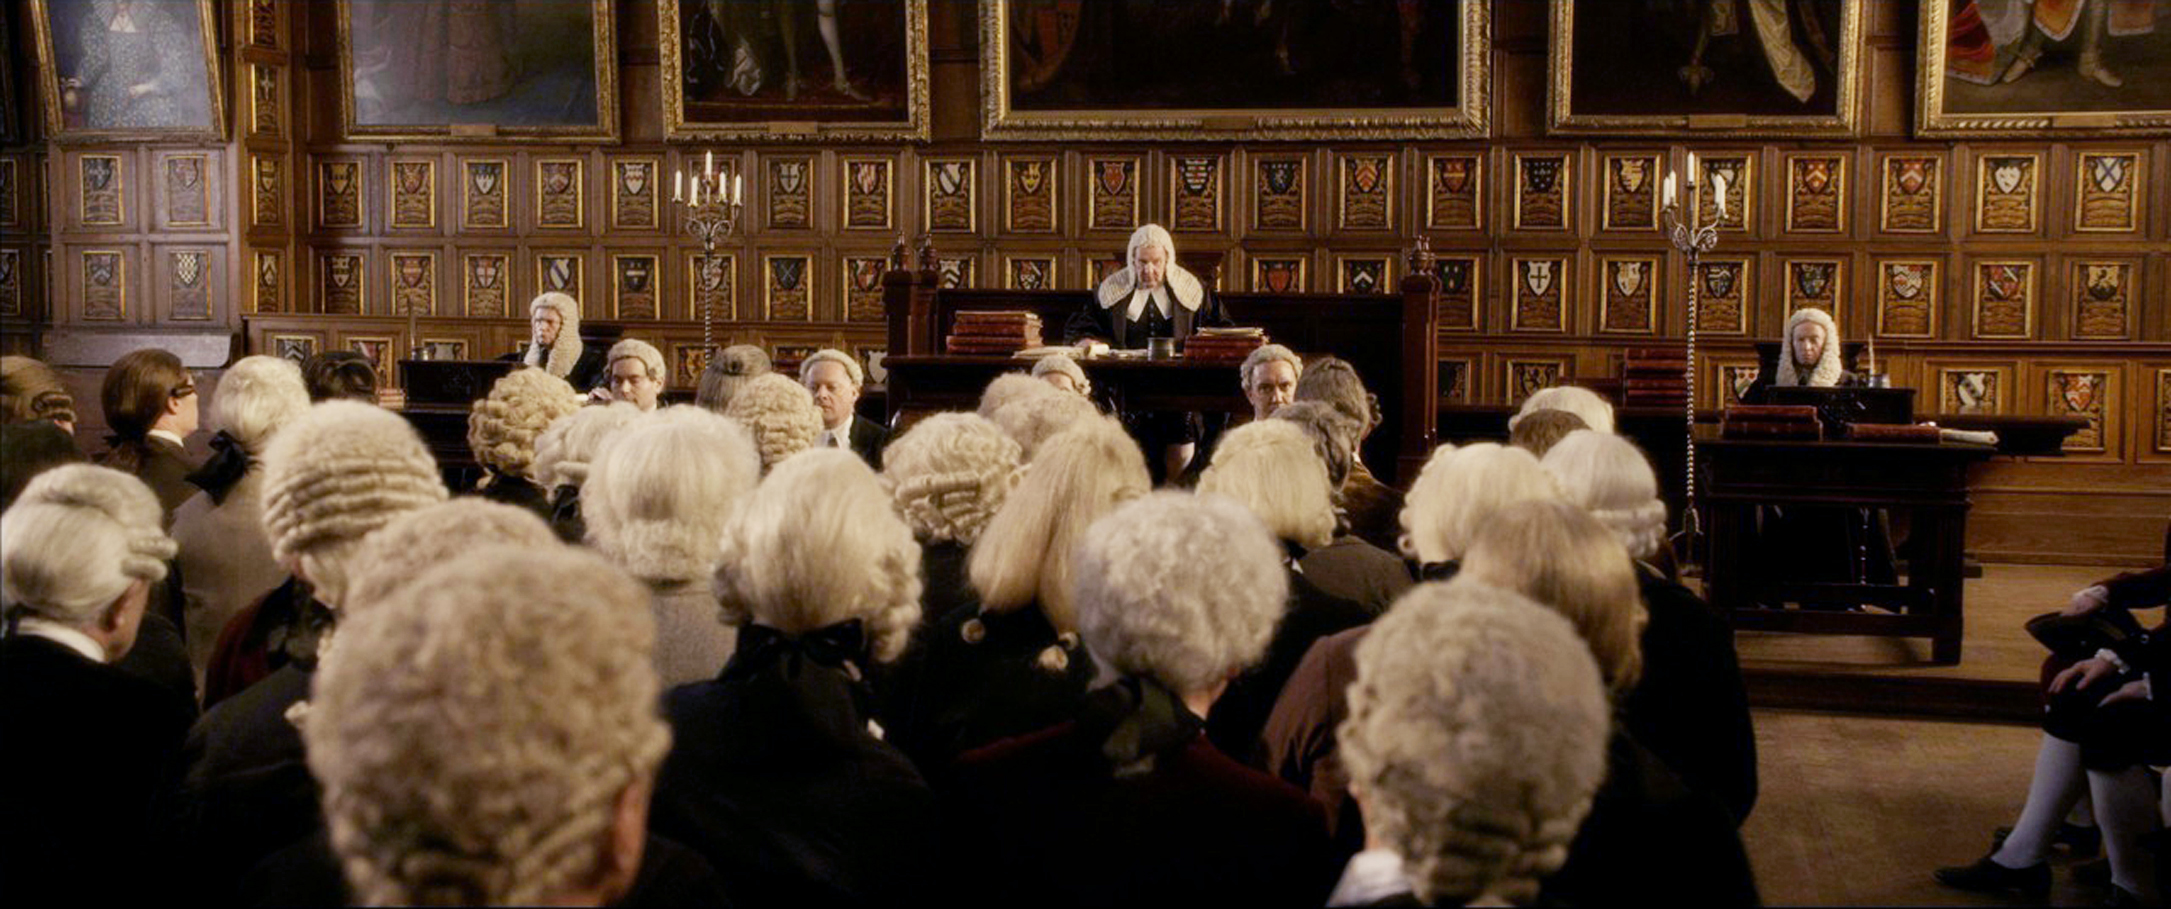 Courtroom scenes shot at Middle Temple, London.